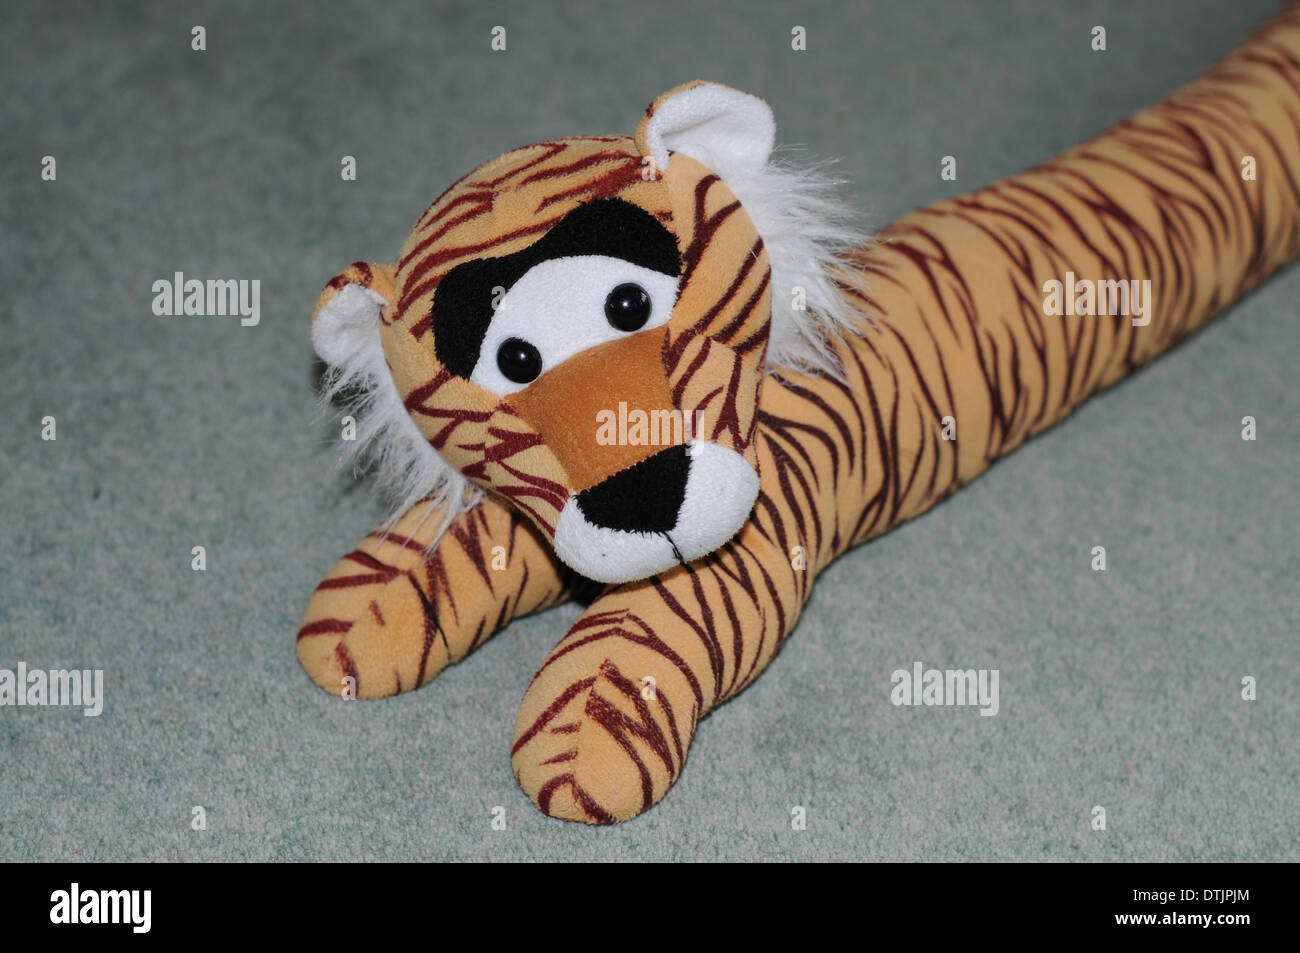 Child's Tiger Toy - Stock Image